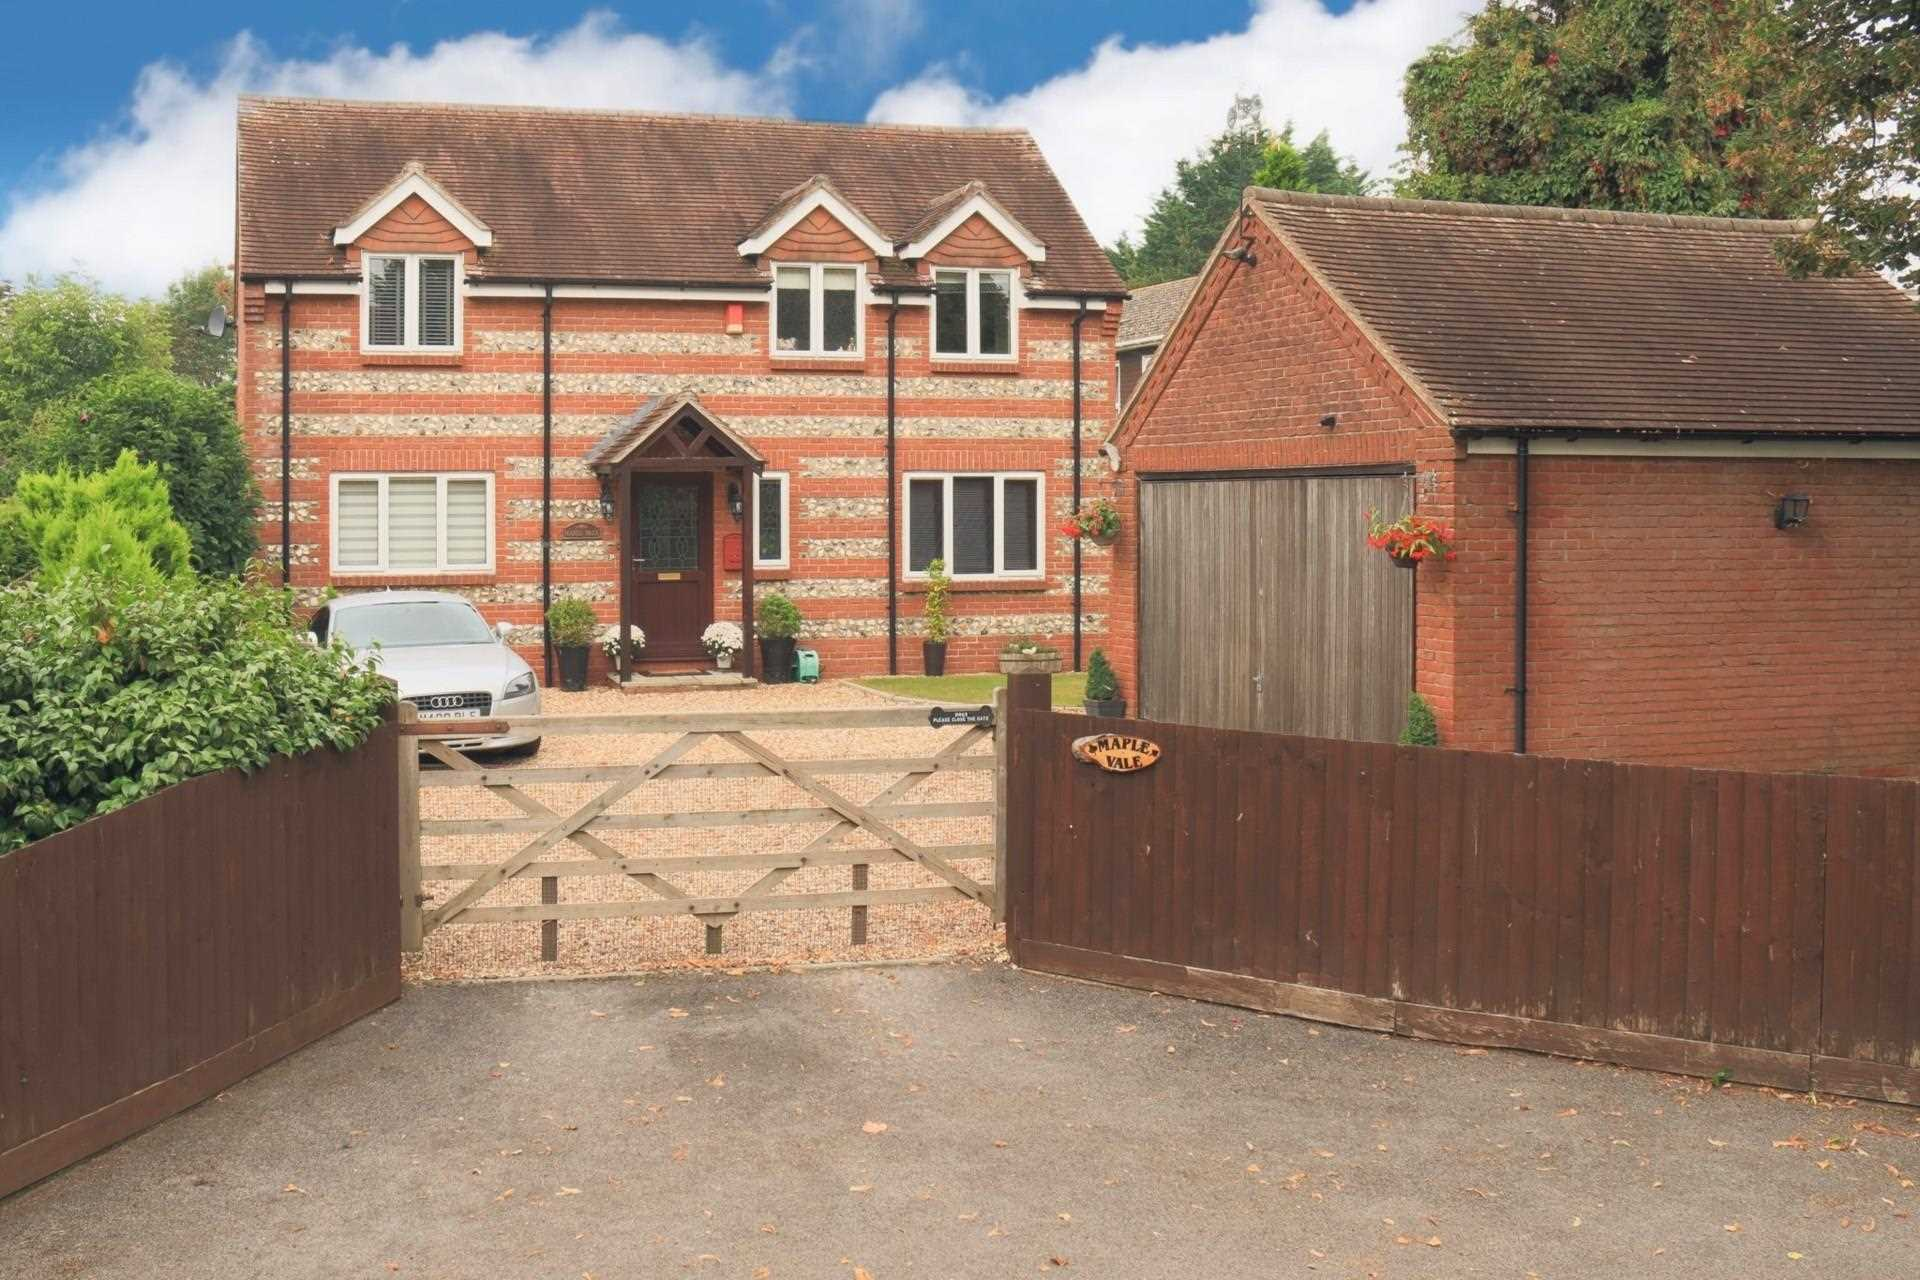 4 bed detached house for sale in Maple Vale, Whatcombe Lane, Winterborne Whitechurch, Blandford Forum 0